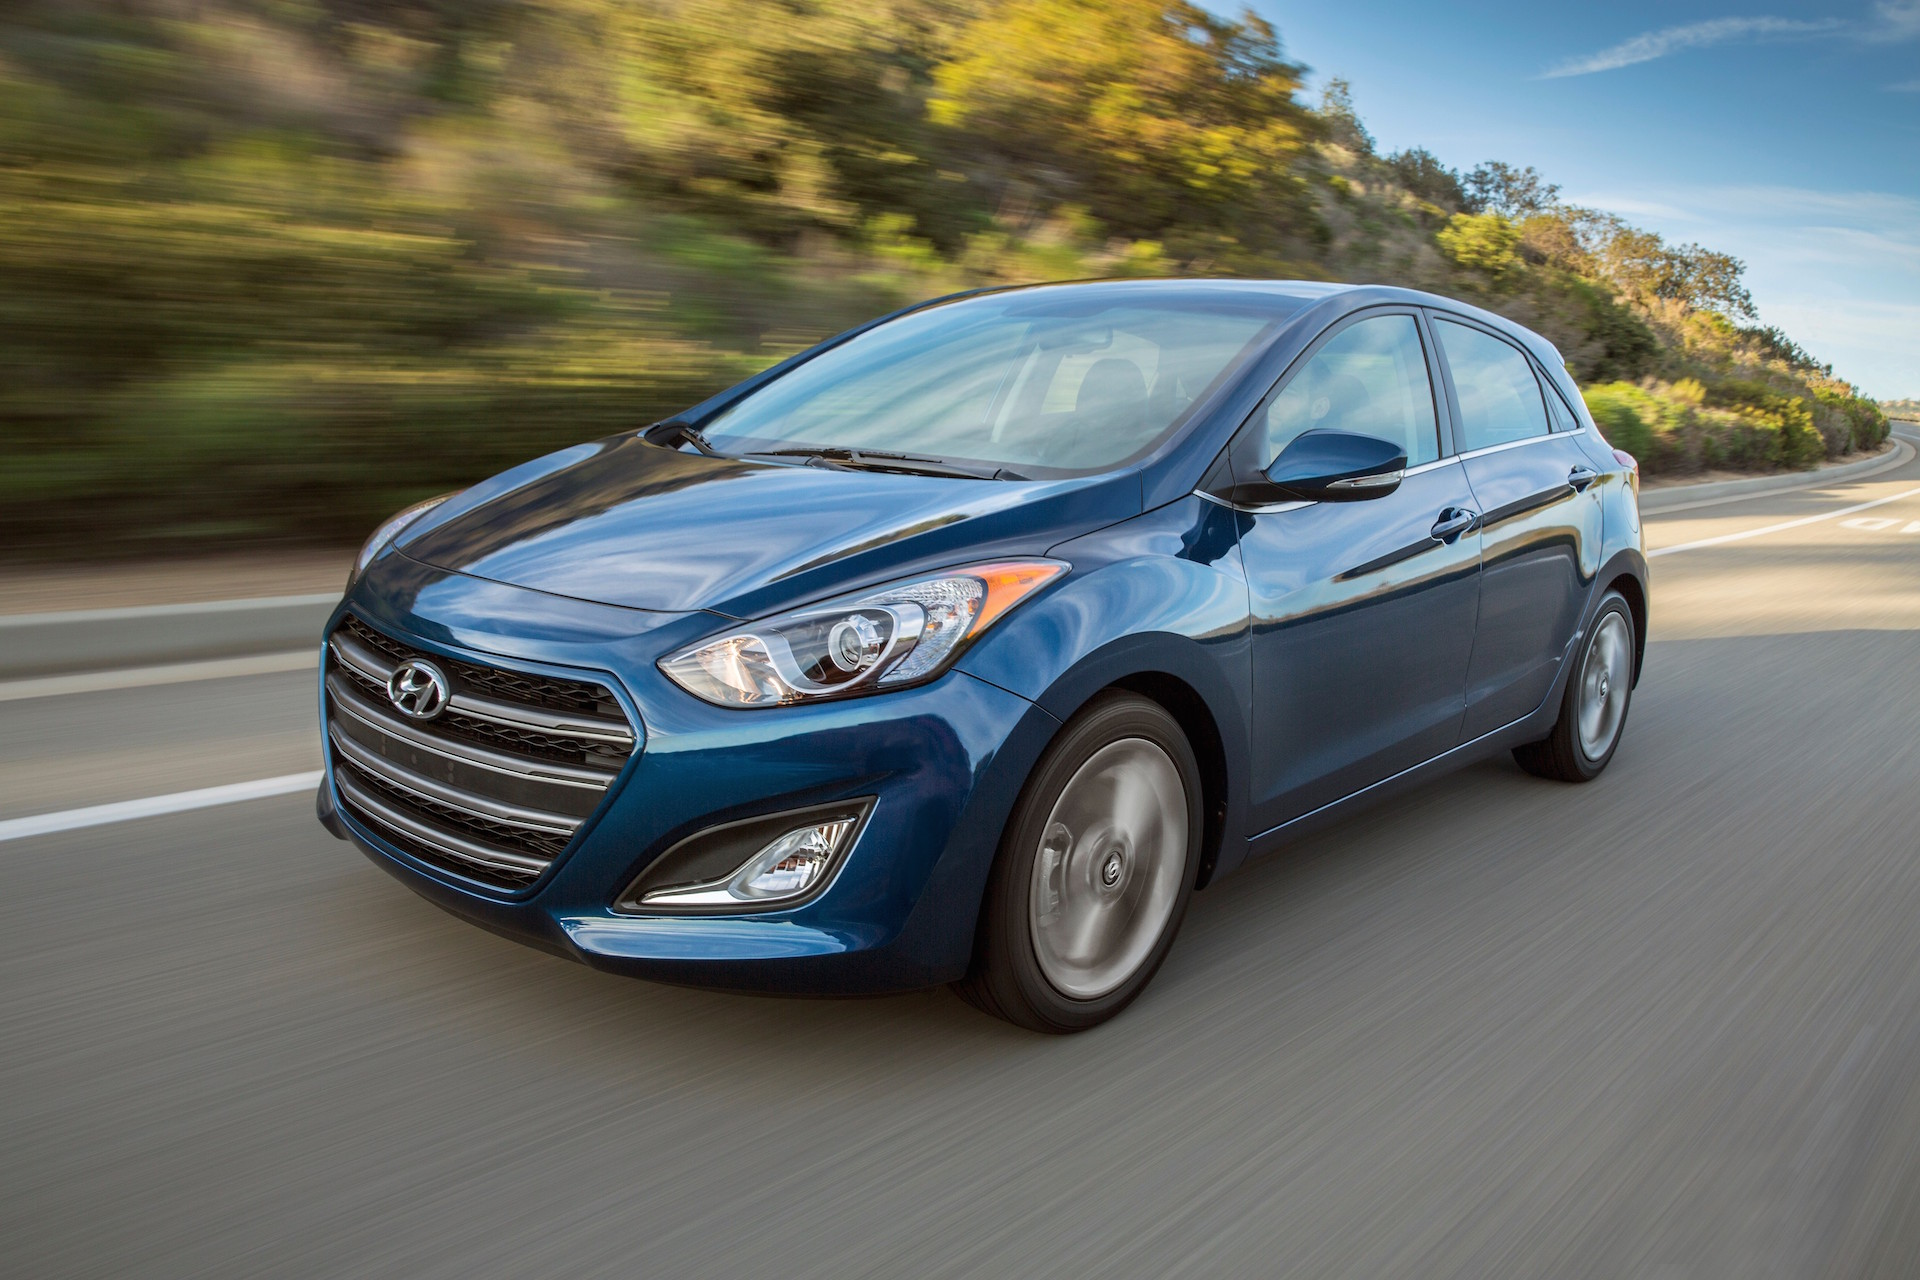 2016 hyundai elantra gt review ratings specs prices and photos the car connection. Black Bedroom Furniture Sets. Home Design Ideas